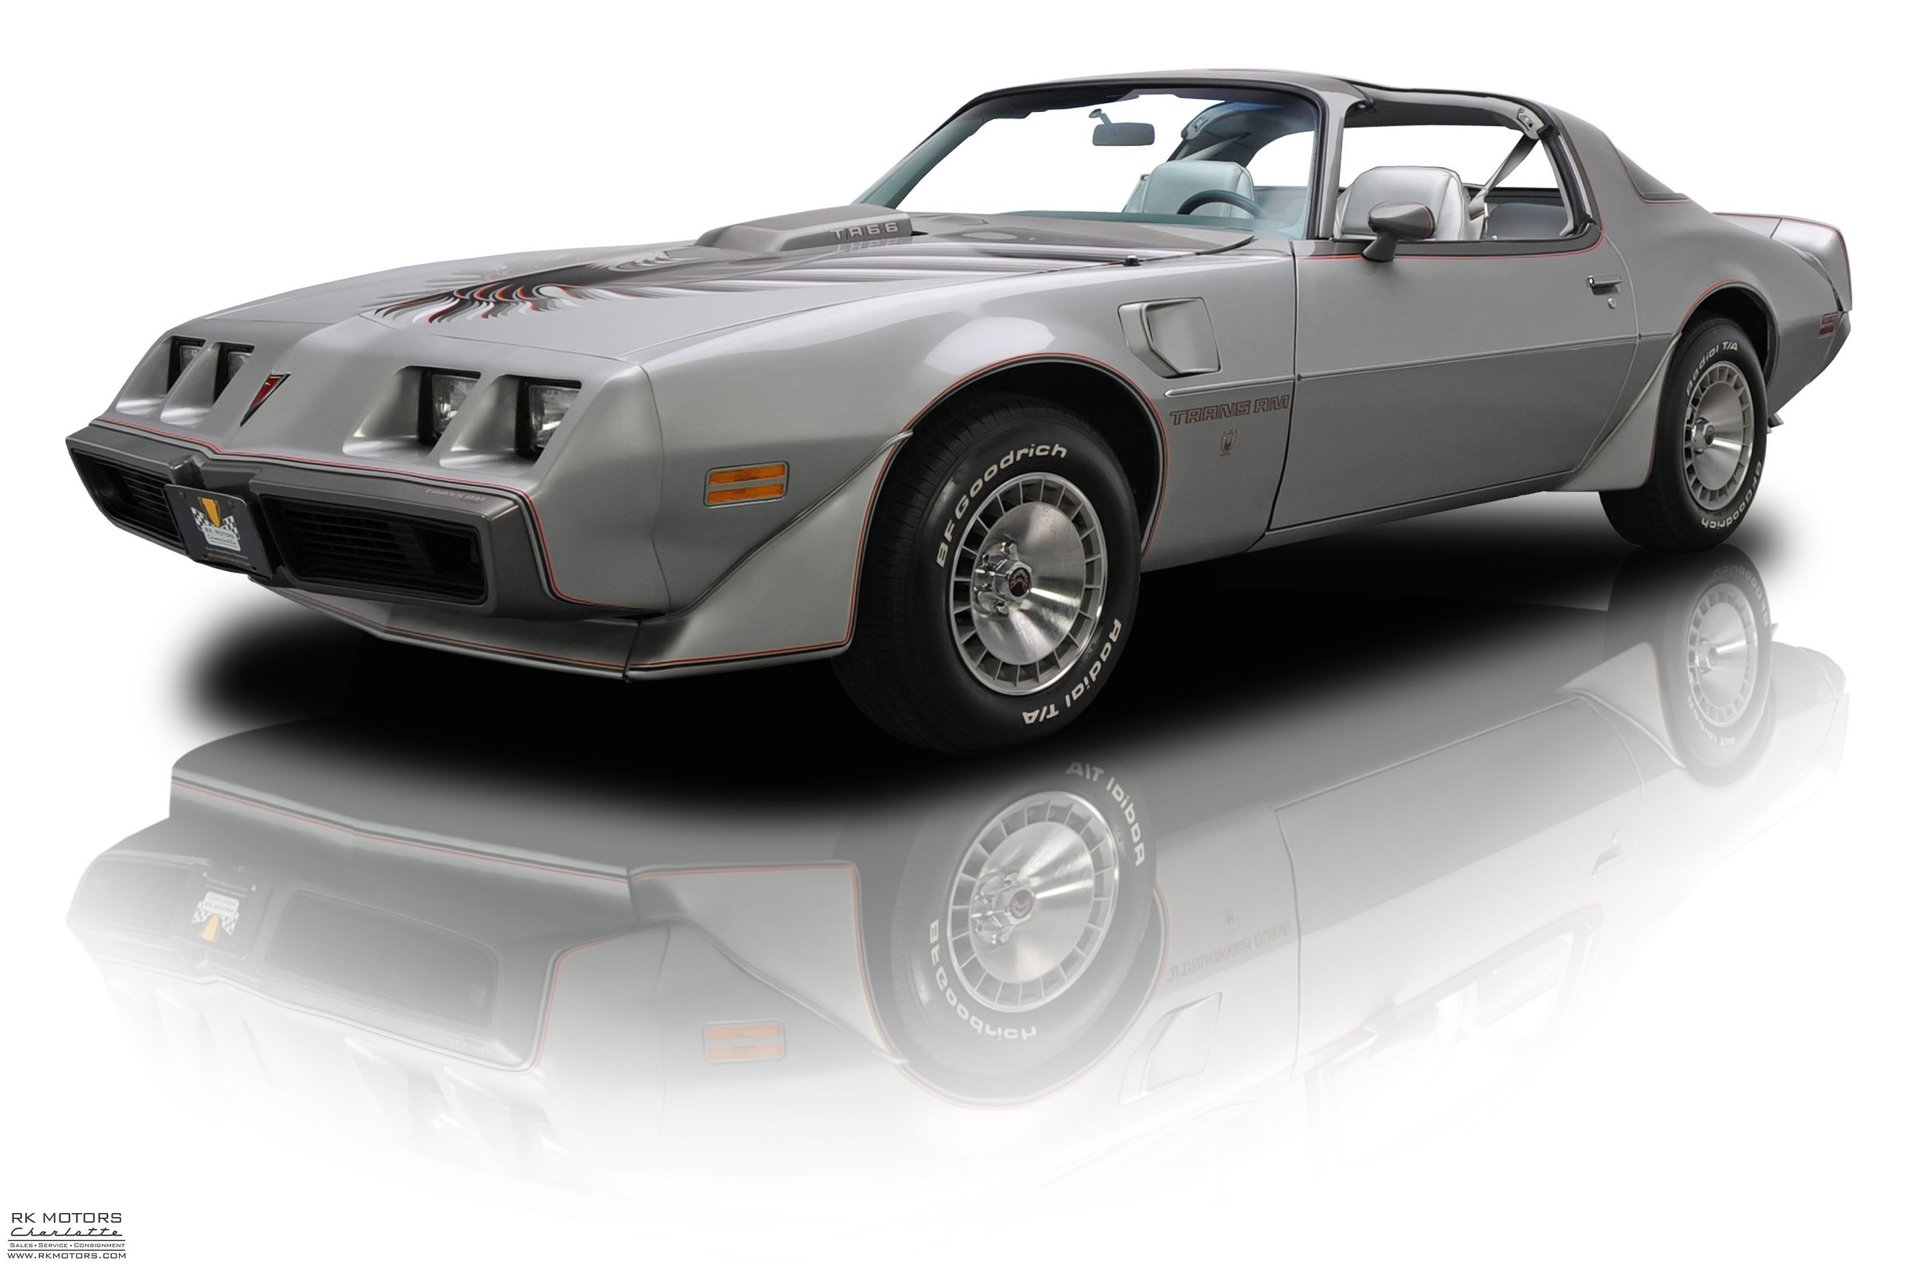 1979 pontiac firebird trans am 10th anniversary edition